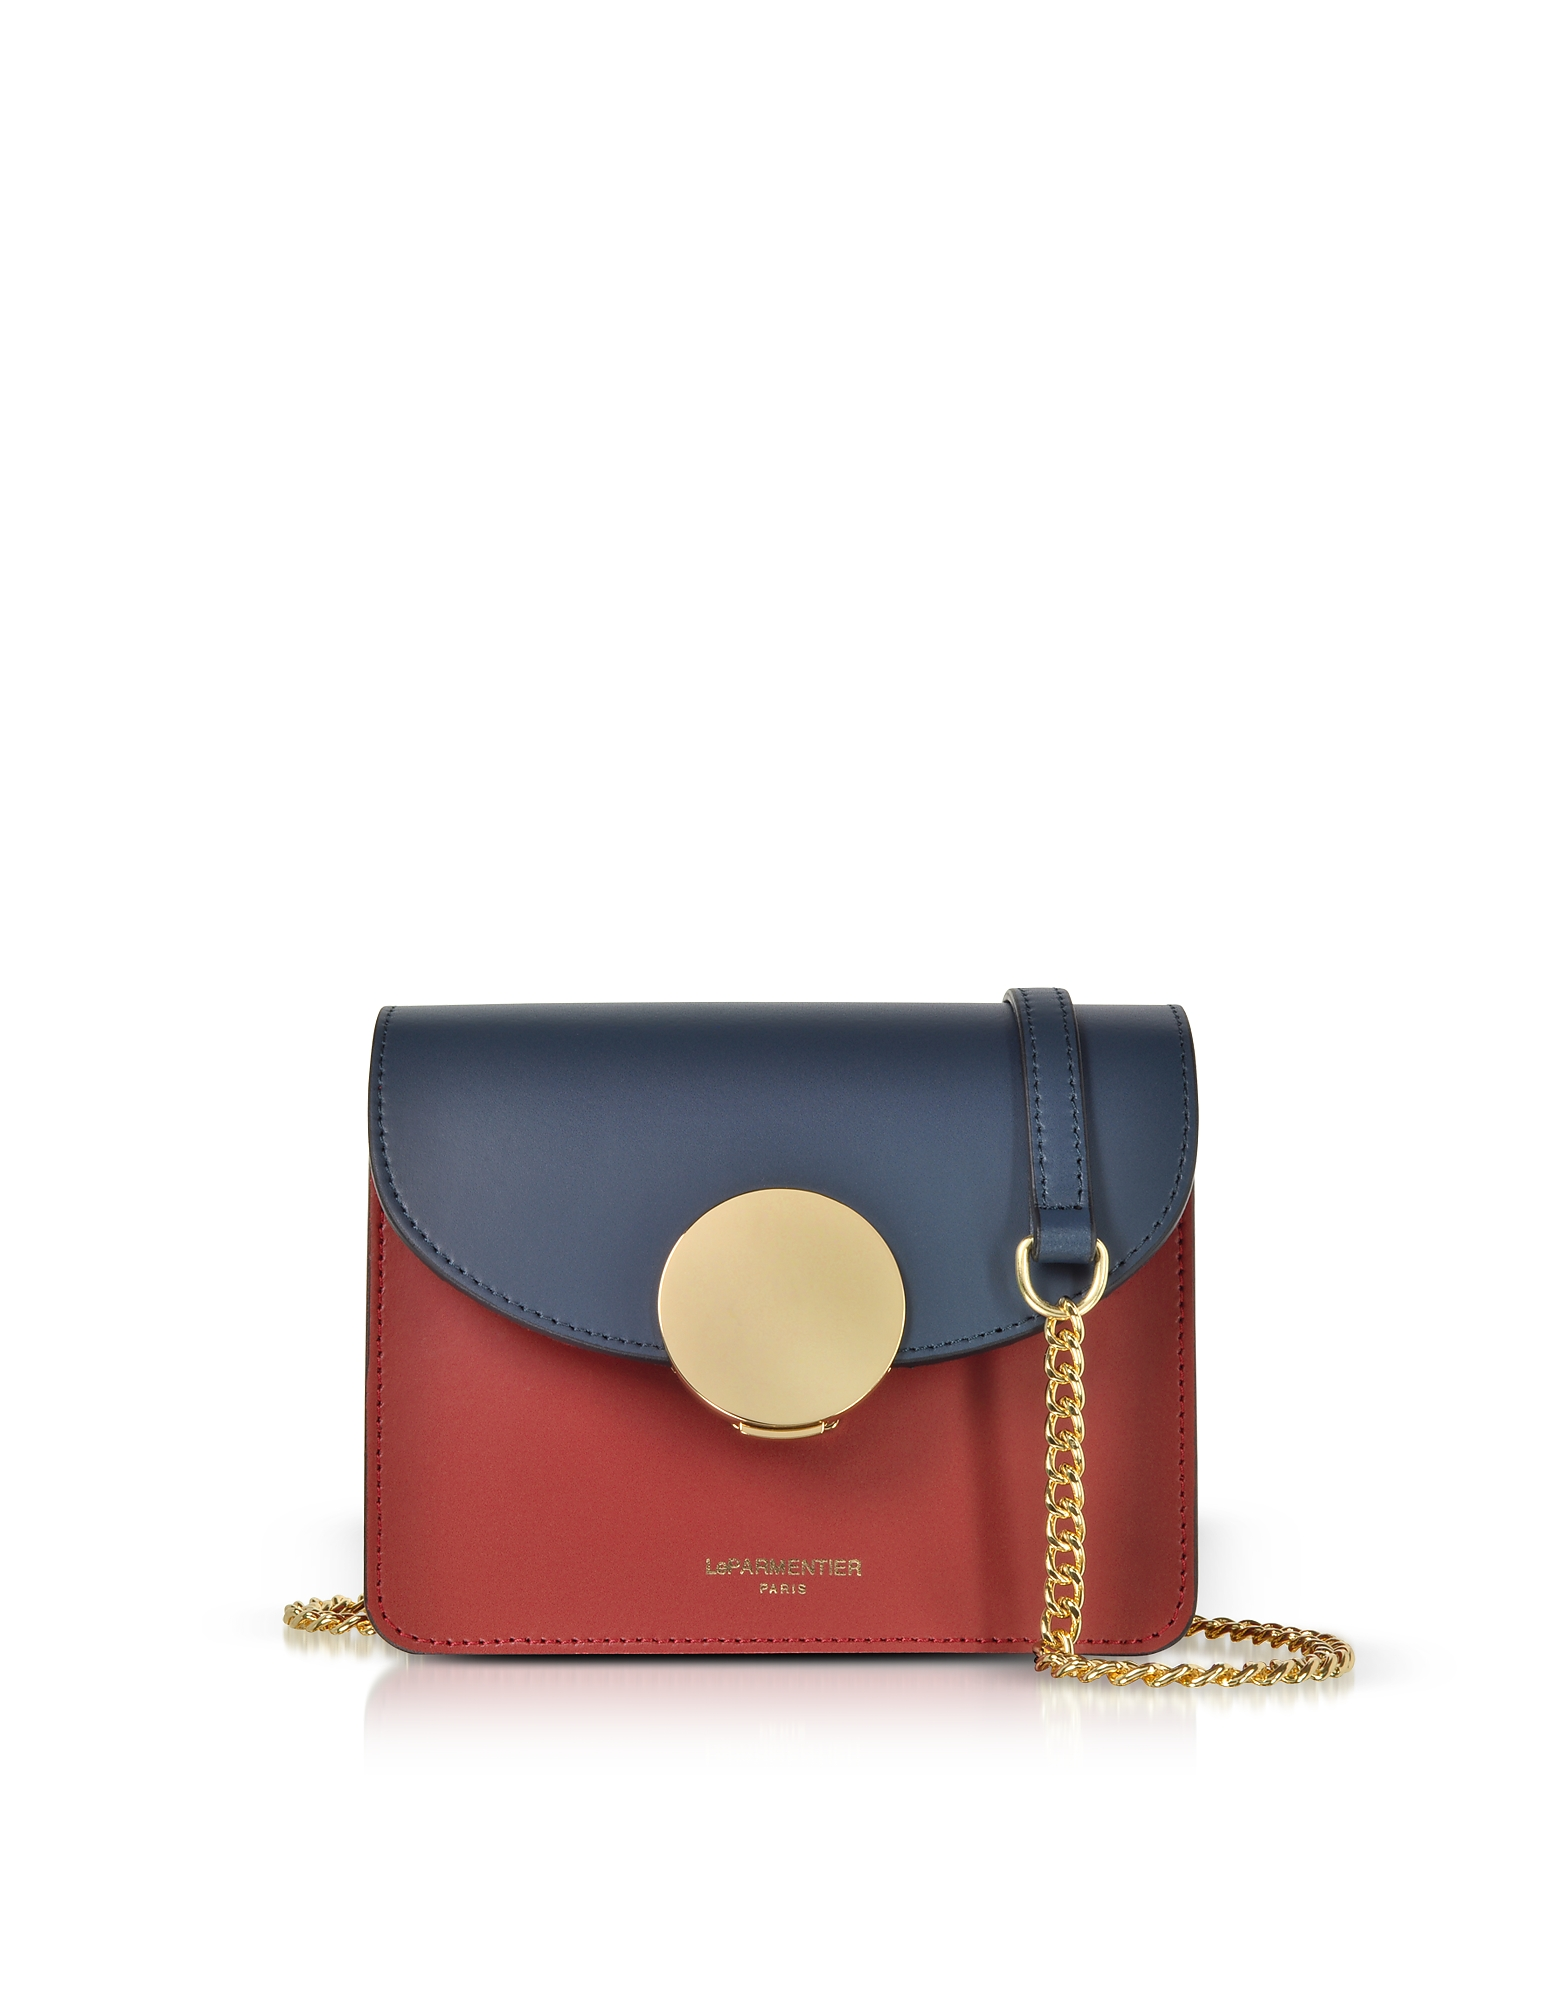 Le Parmentier Designer Handbags, New Ondina Mini Color Block Shoulder Bag